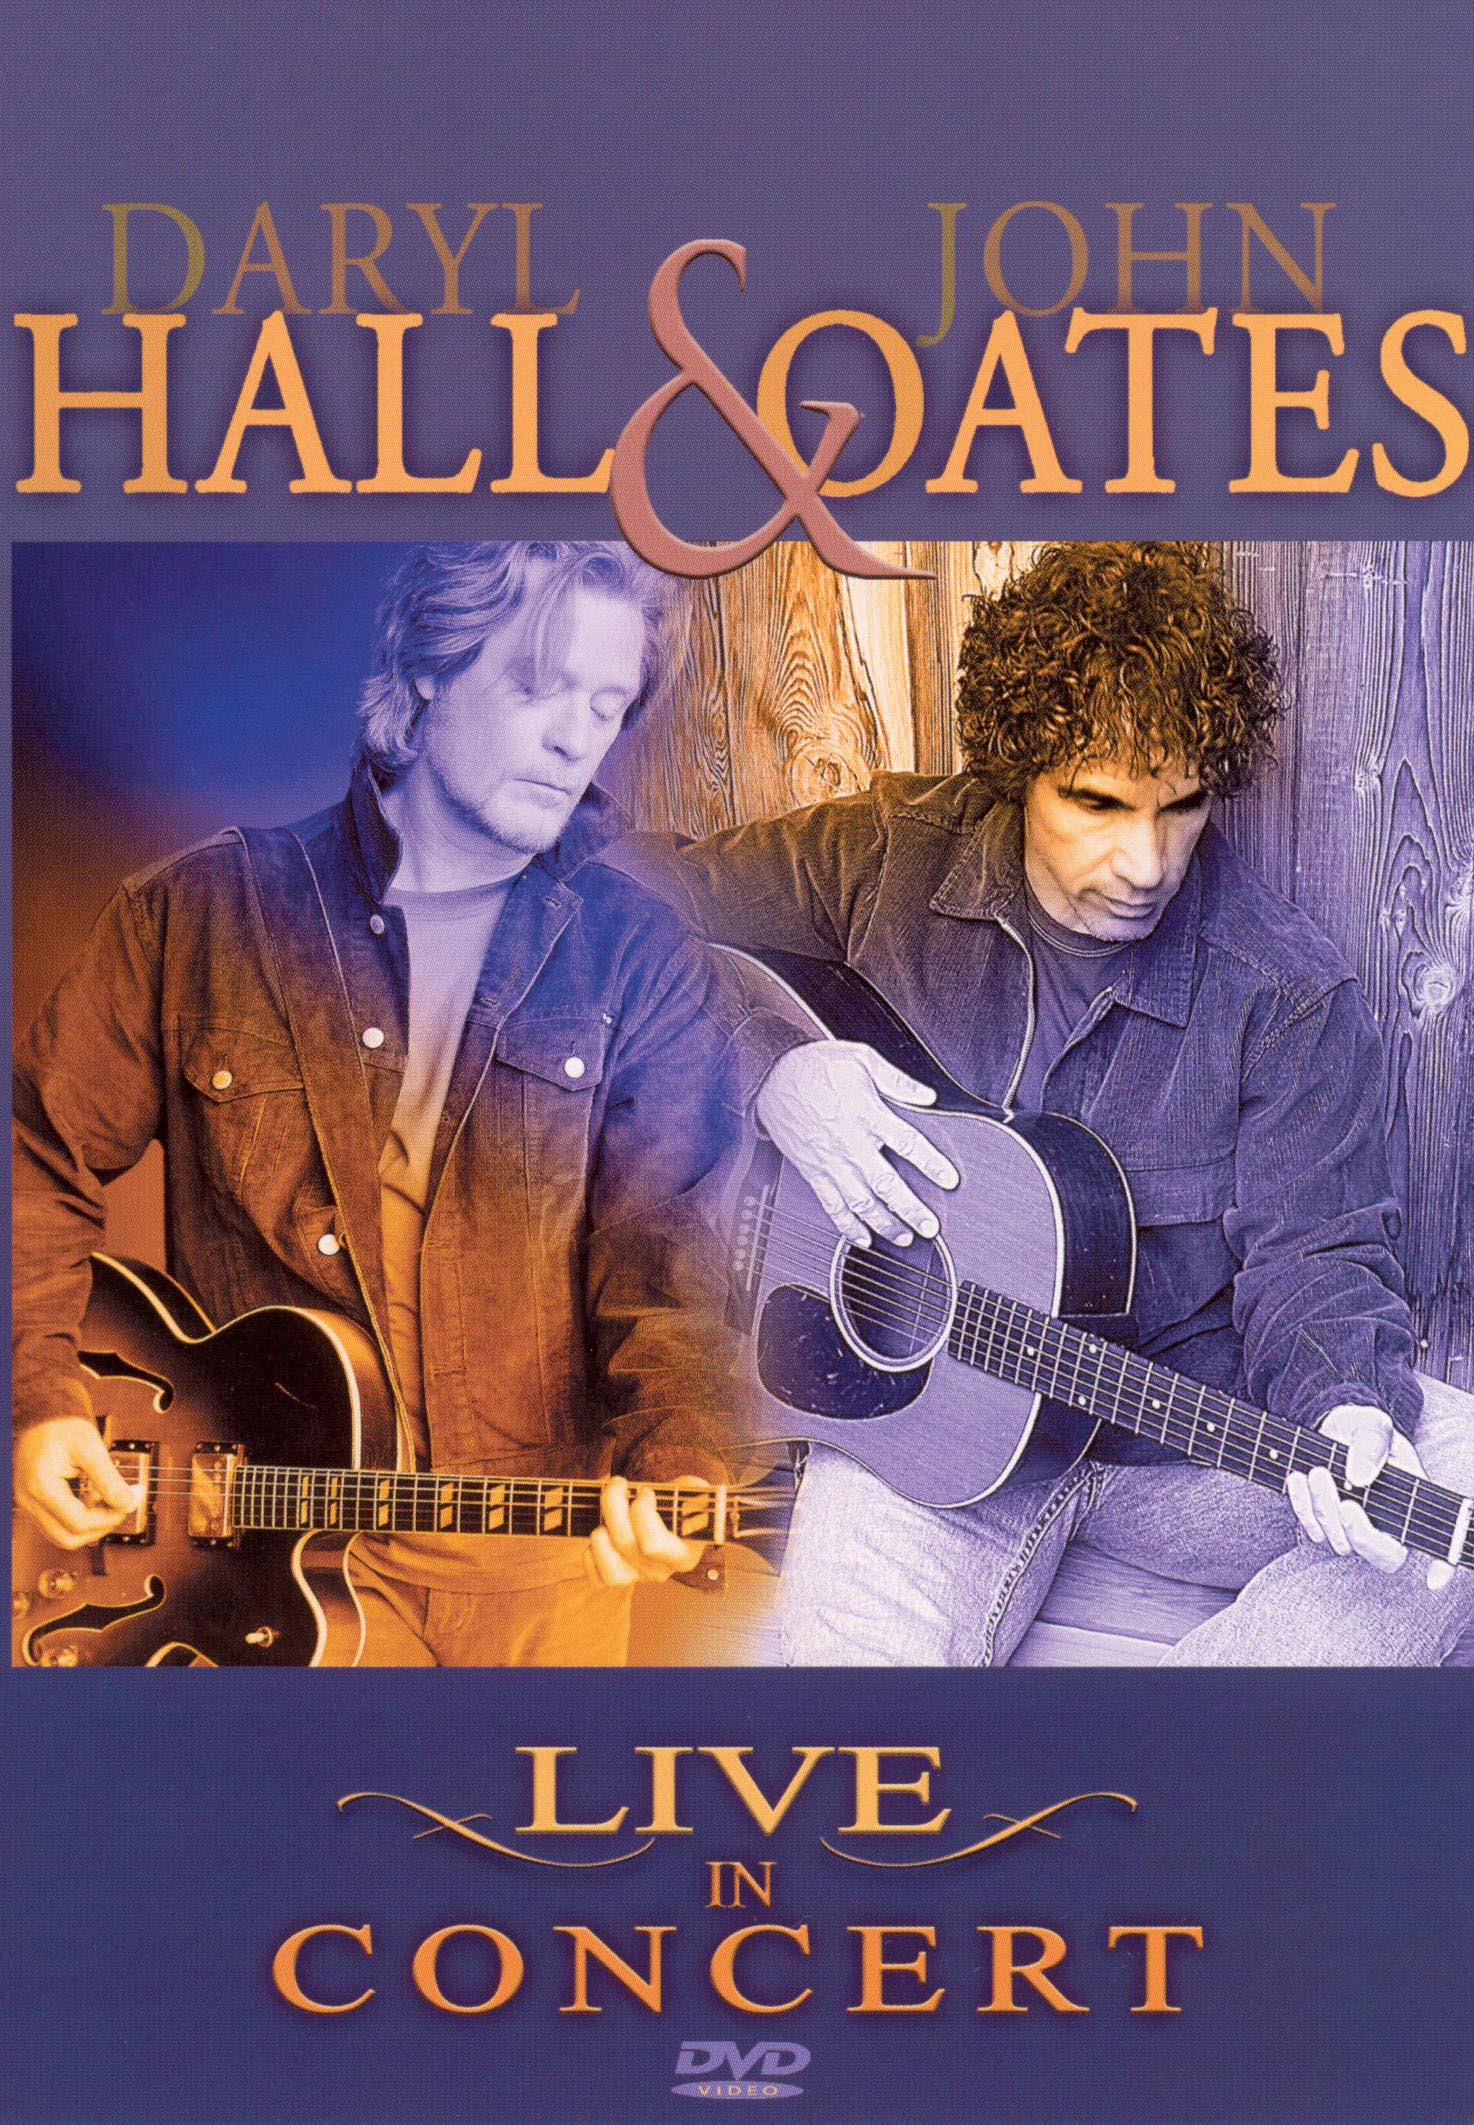 Daryl Hall and John Oates: Live in Concert